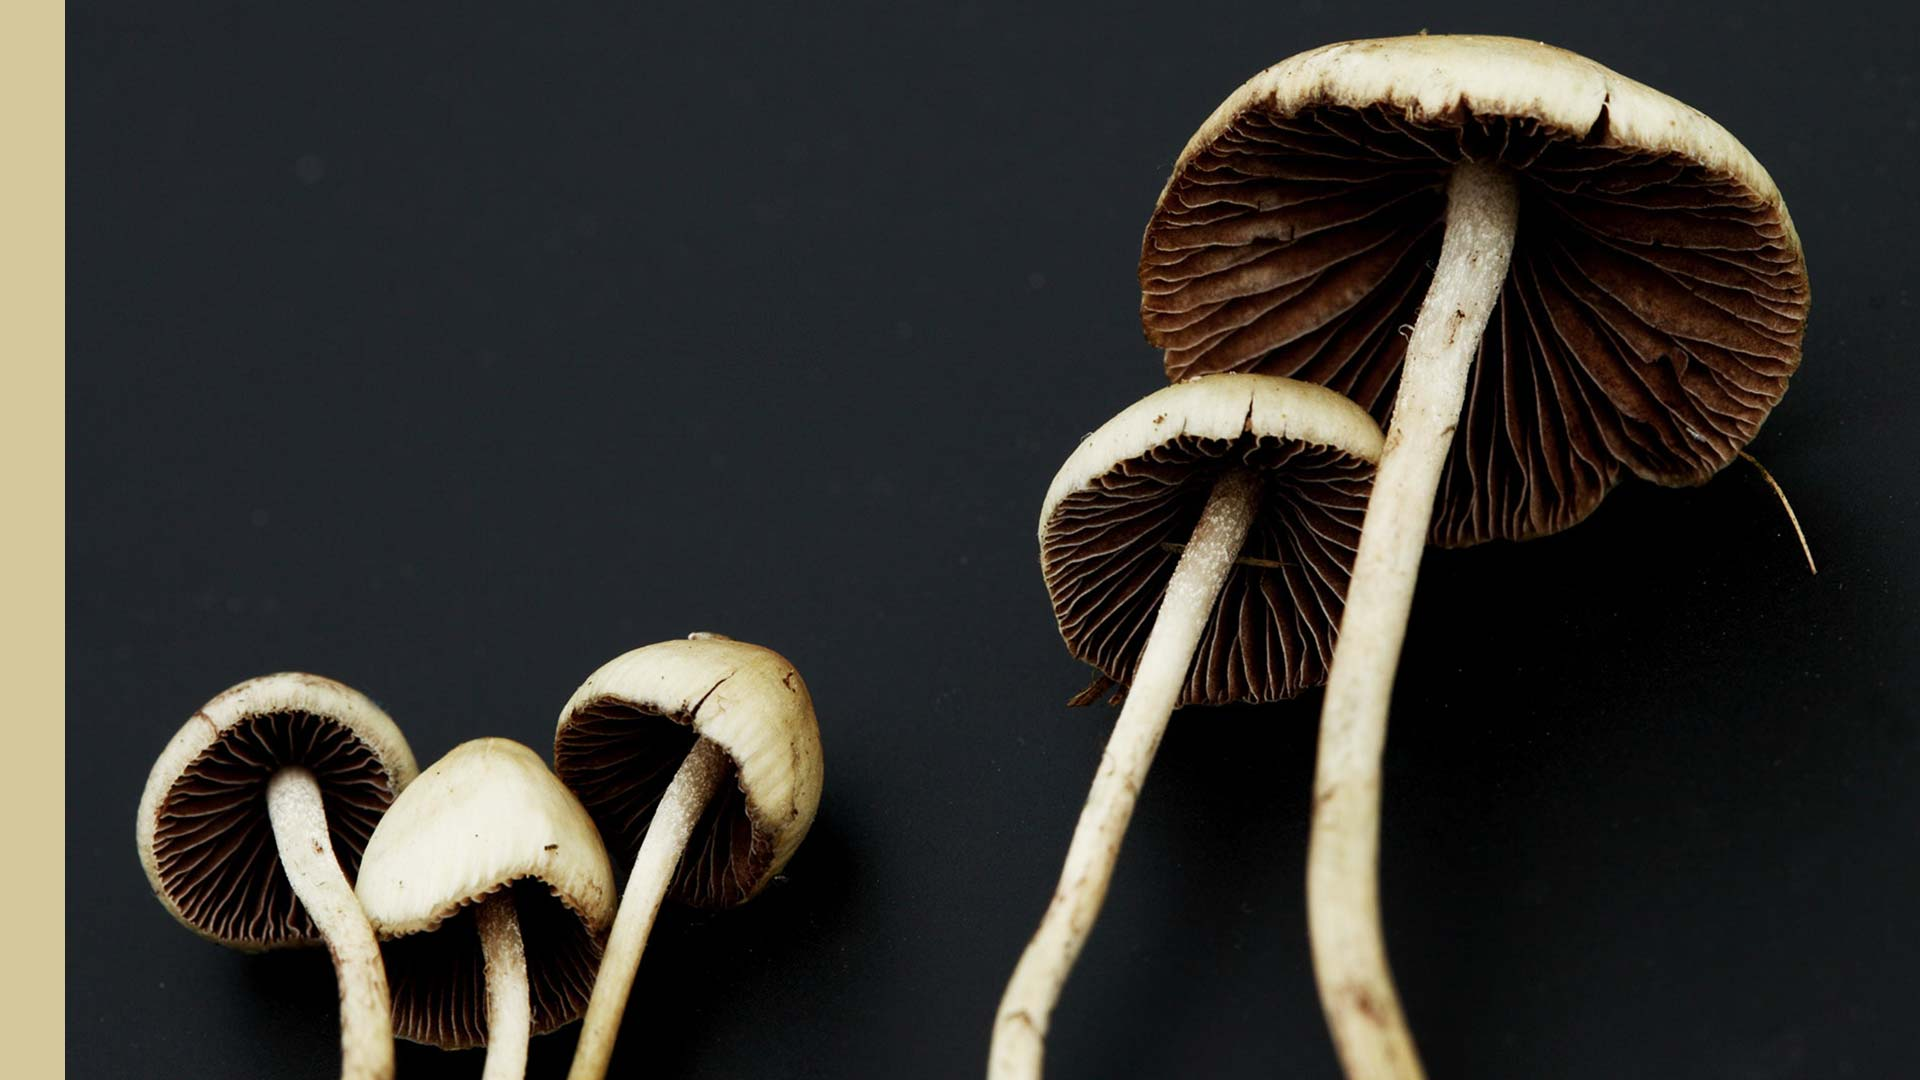 Find the best shrooms with good properties